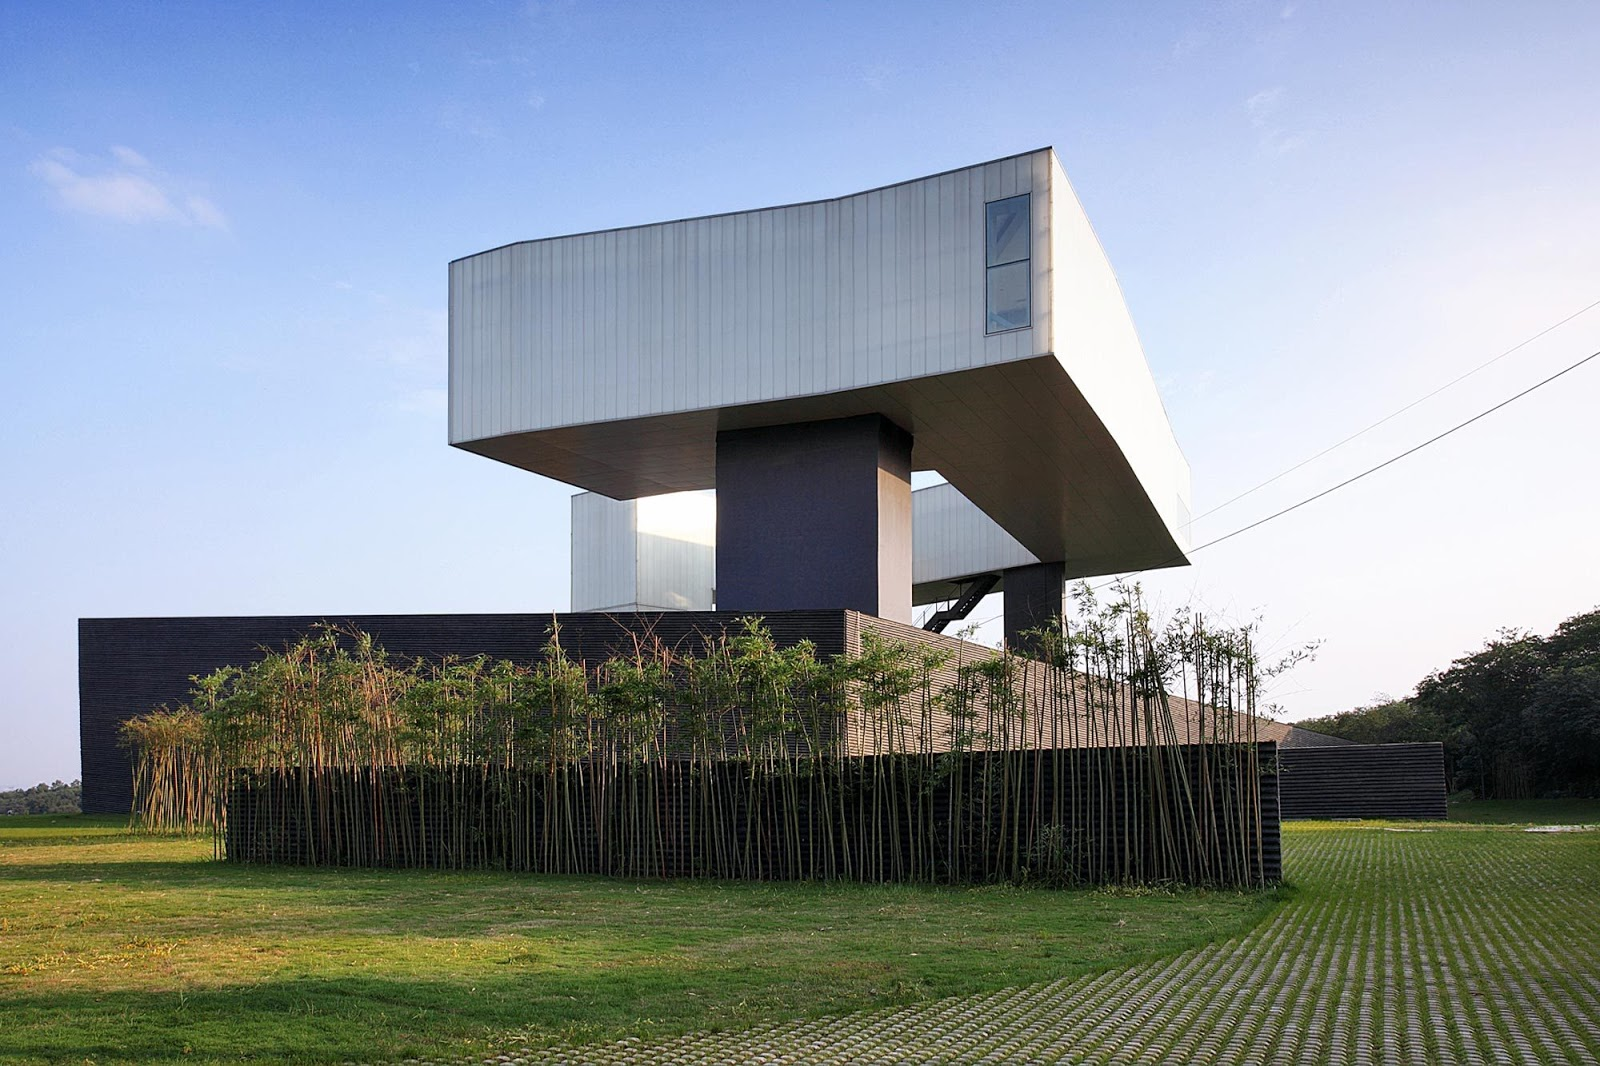 Steven holl architects a f a s i a for Architecture 54